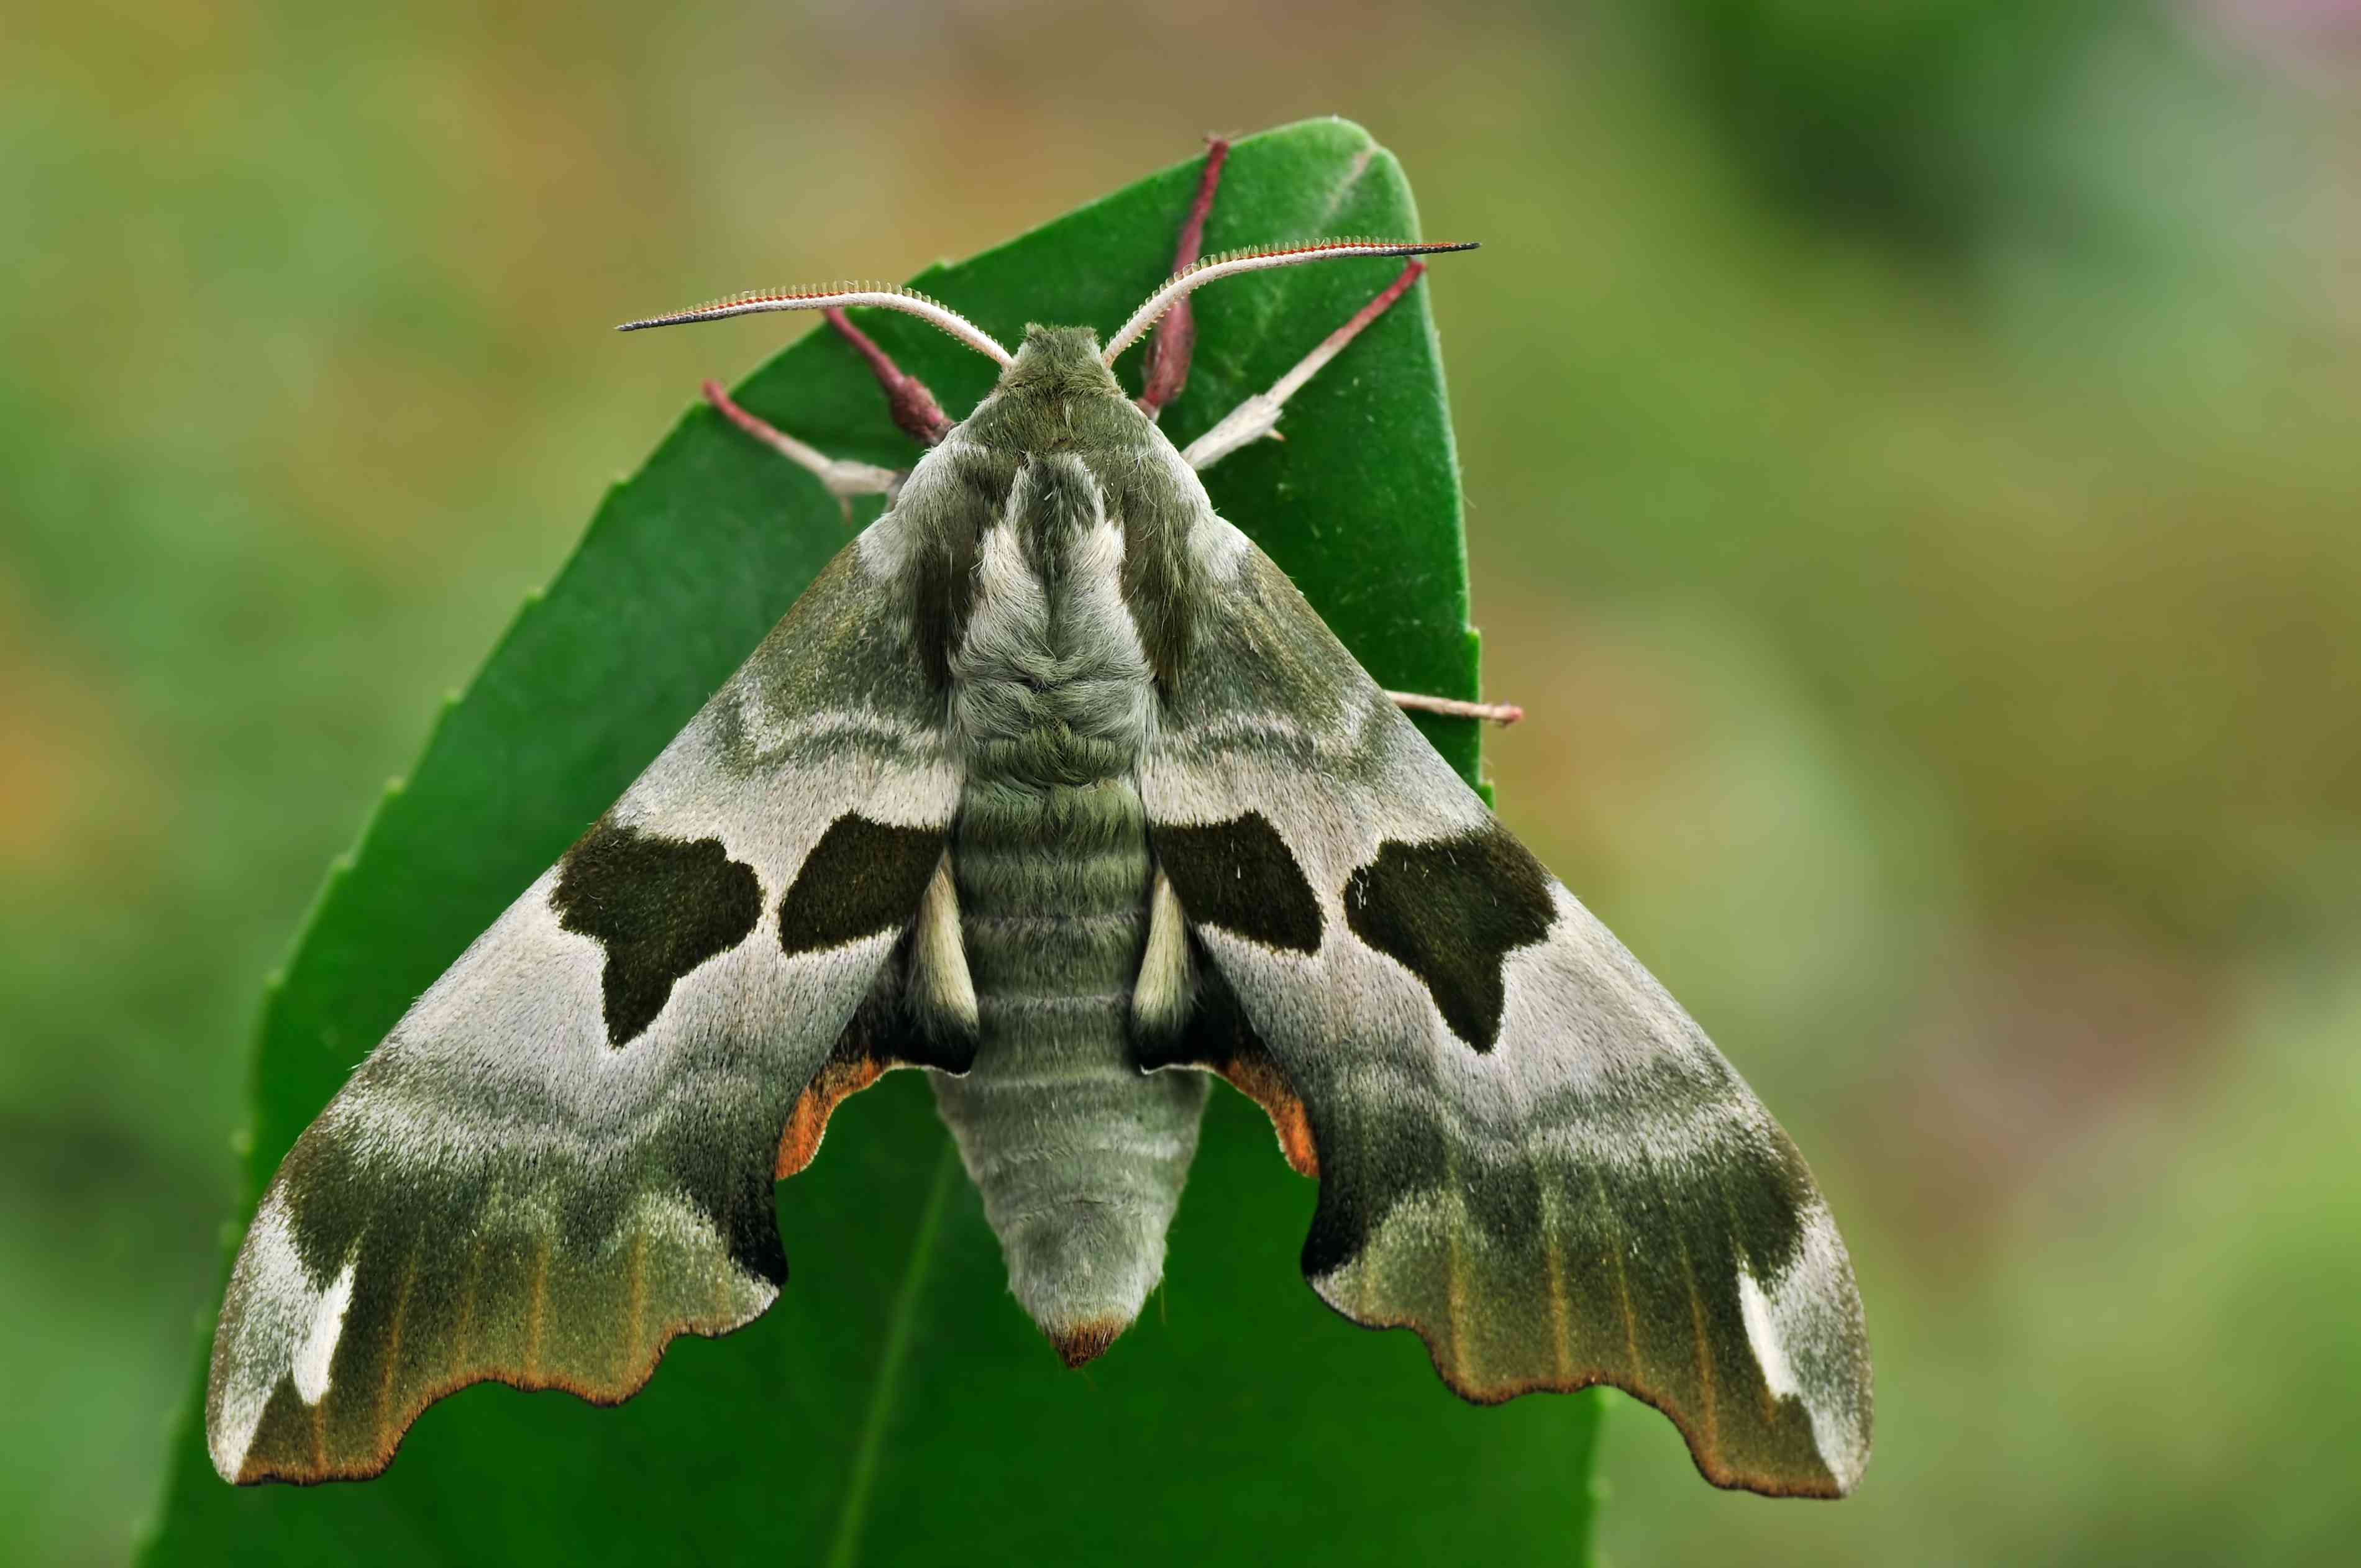 A green and white moth sits on a bright green leaf